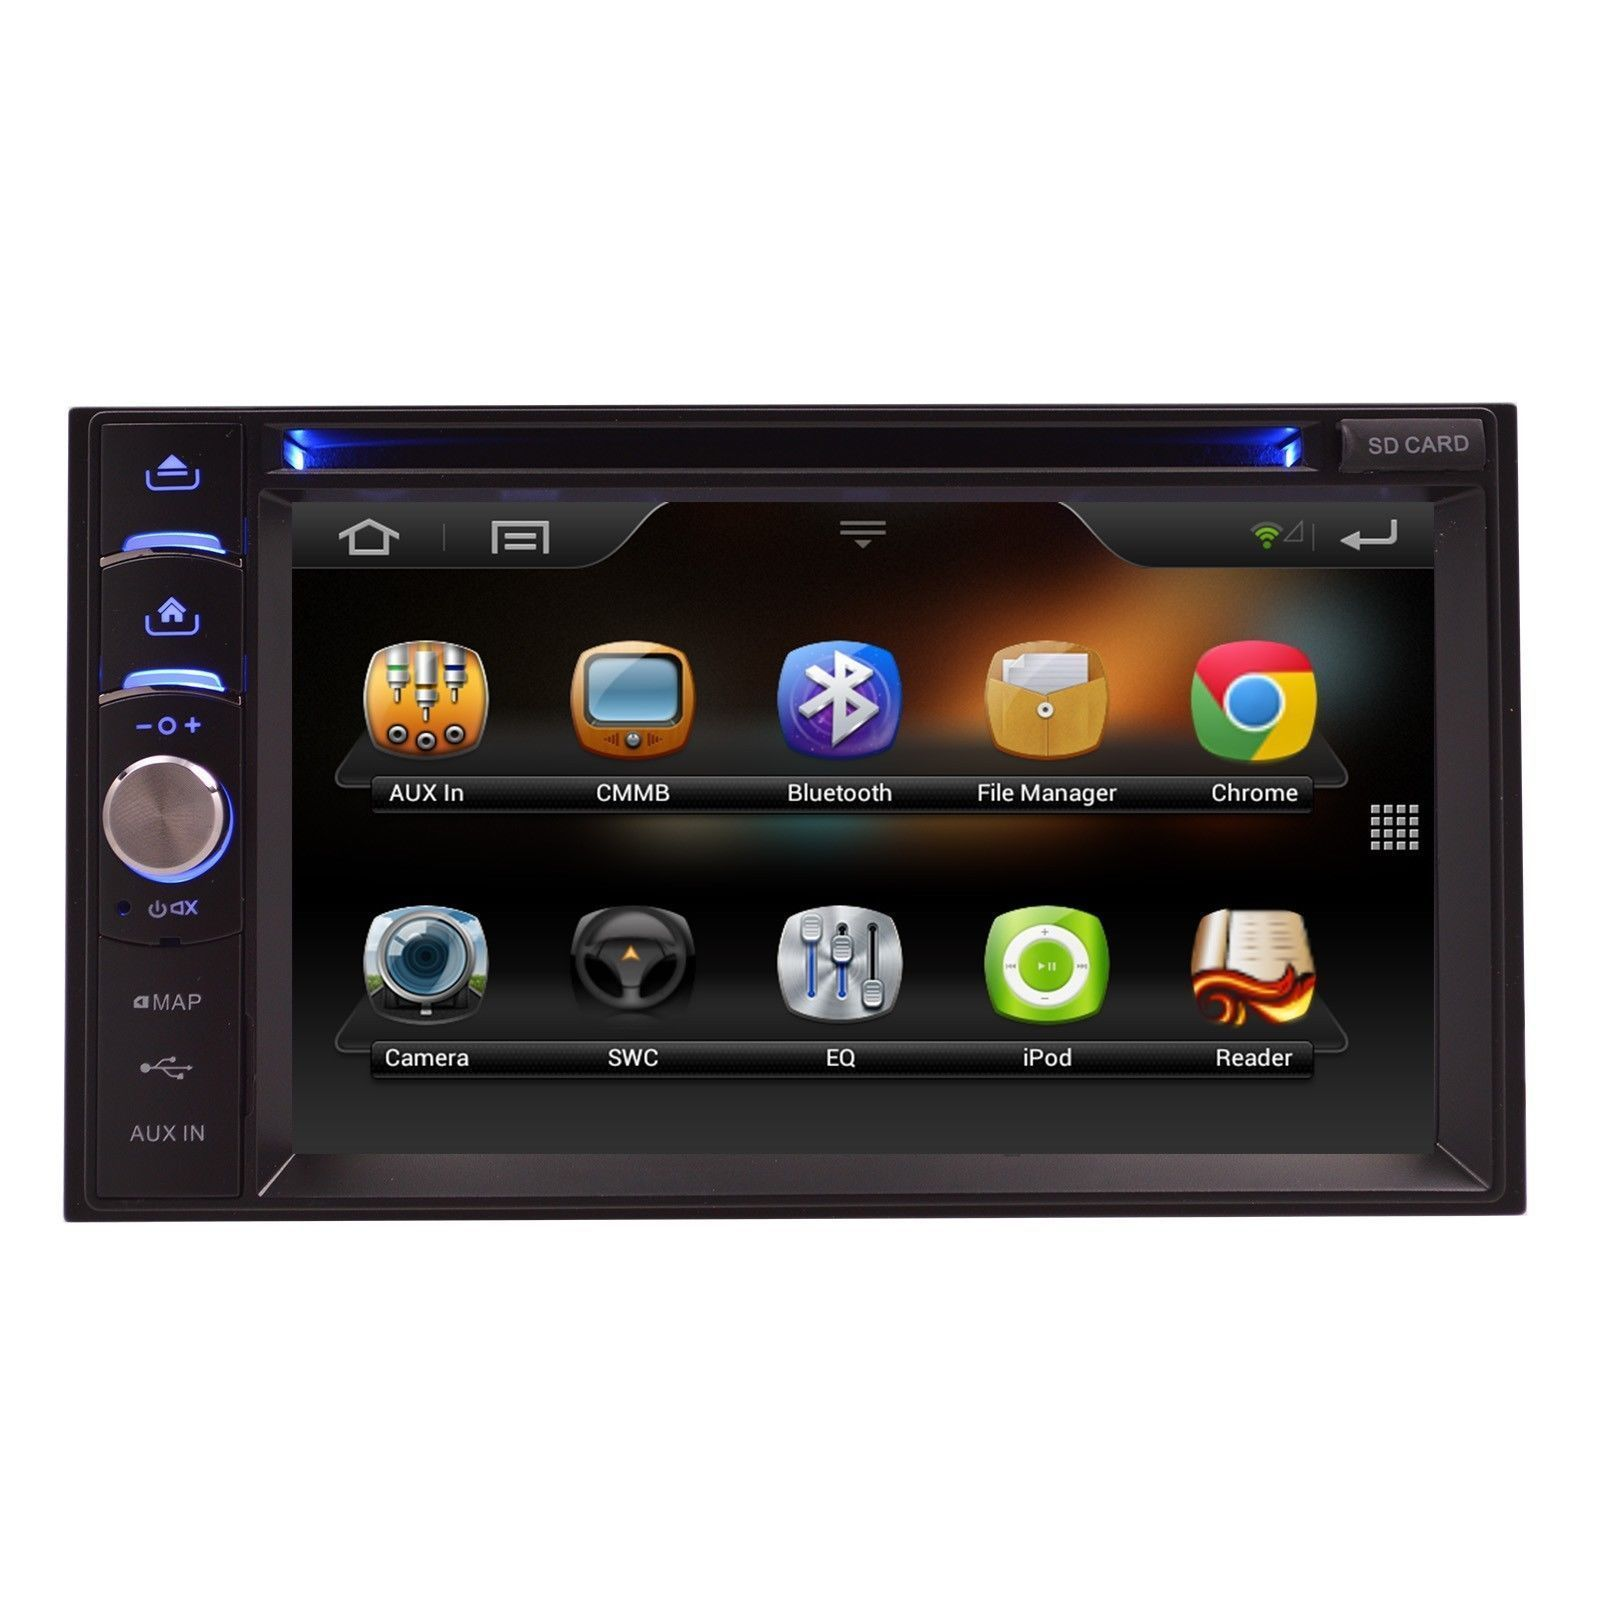 MP3 DVD BLUETOOTH CD DVD AUX OE FIT DOUBLE DIN MULTIMEDIA ANDROUD NAVIGATION